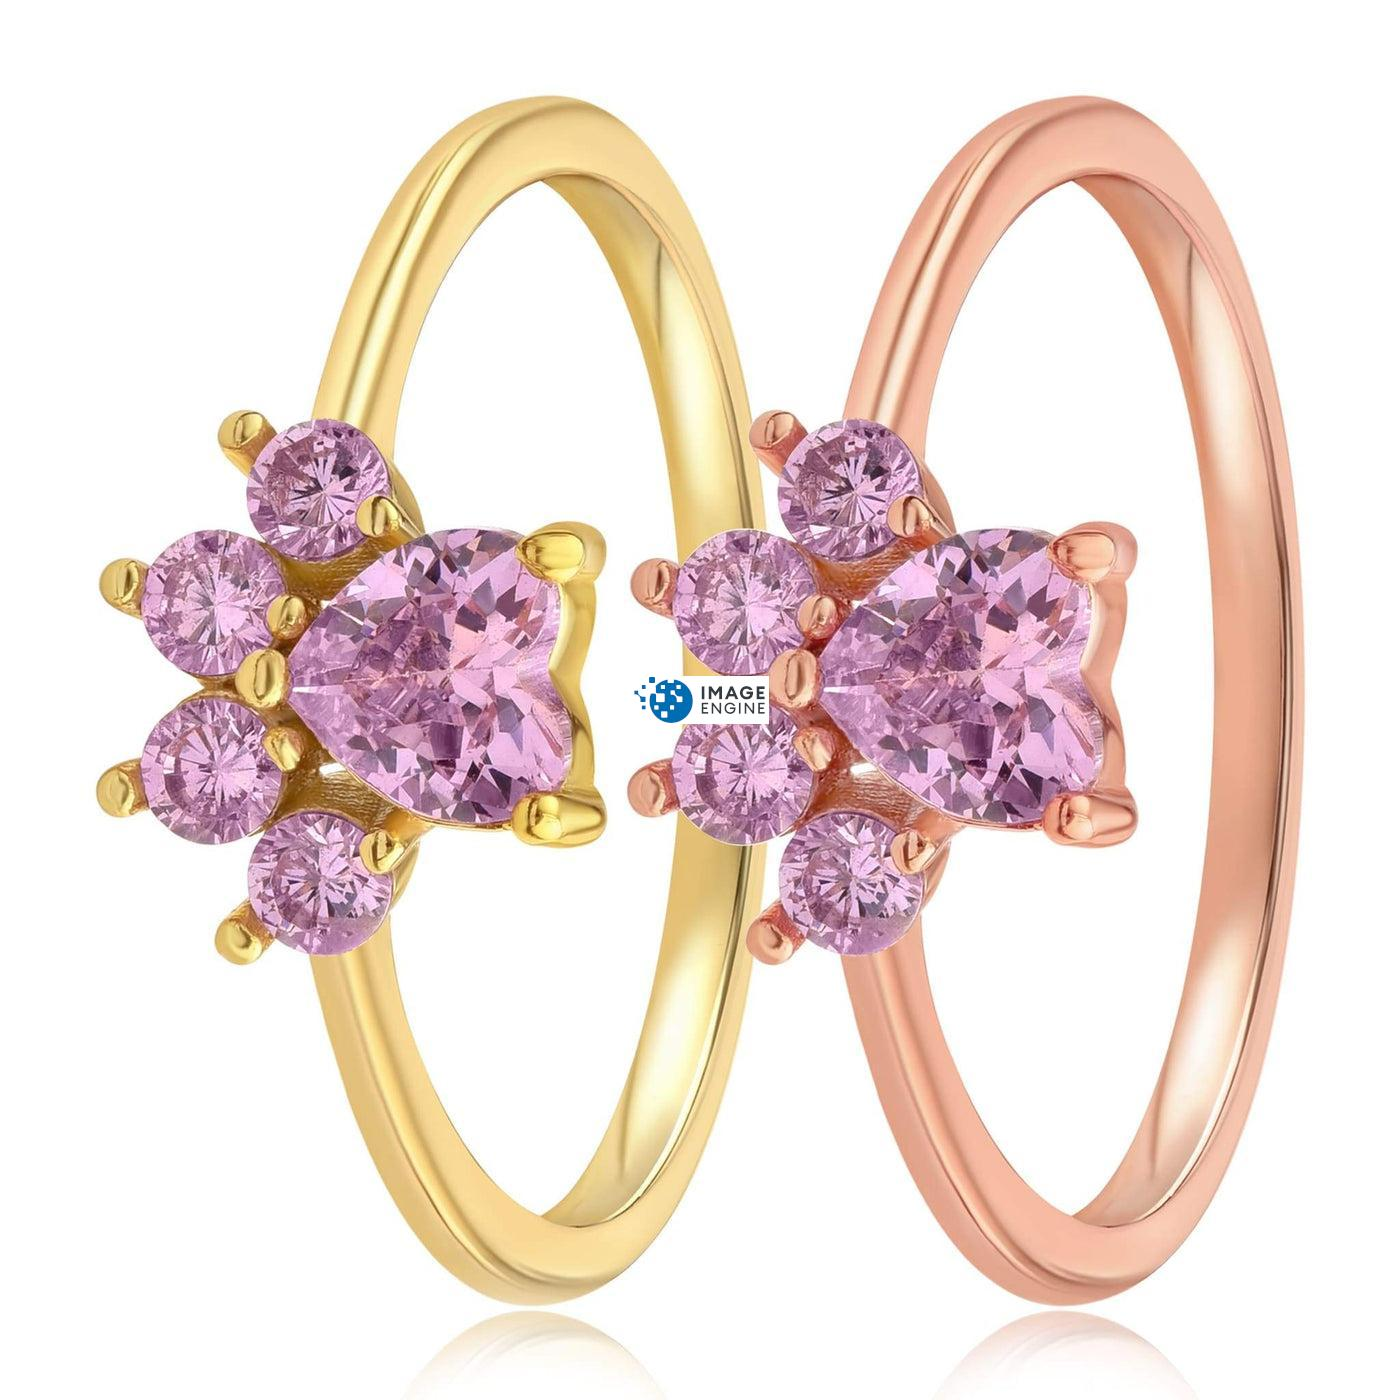 Bella Paw Rose Quartz Ring - Side By Side - 18K Yellow Gold Vermeil and 18K Rose Gold Vermeil